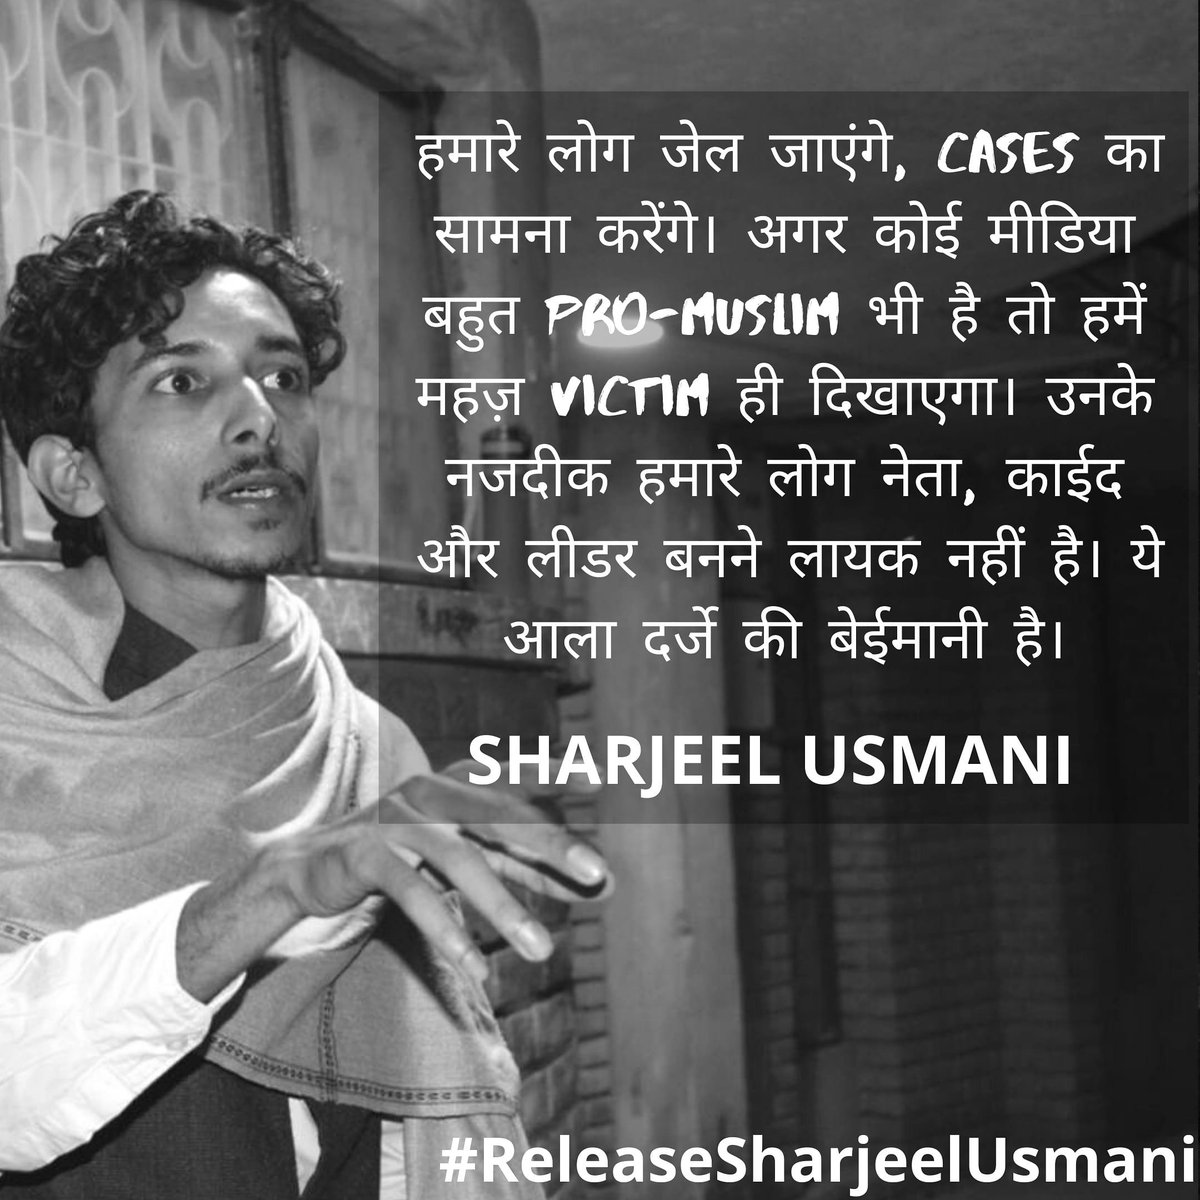 """""""Our people will be imprisoned, they will fight cases. If a media house is very pro-Muslim, it will only portray us as victims. They don't think that we can become neta, qaeed and leader. This is a high level of betrayal."""" -Sharjeel Usmani. pic.twitter.com/90eclwsXmf"""